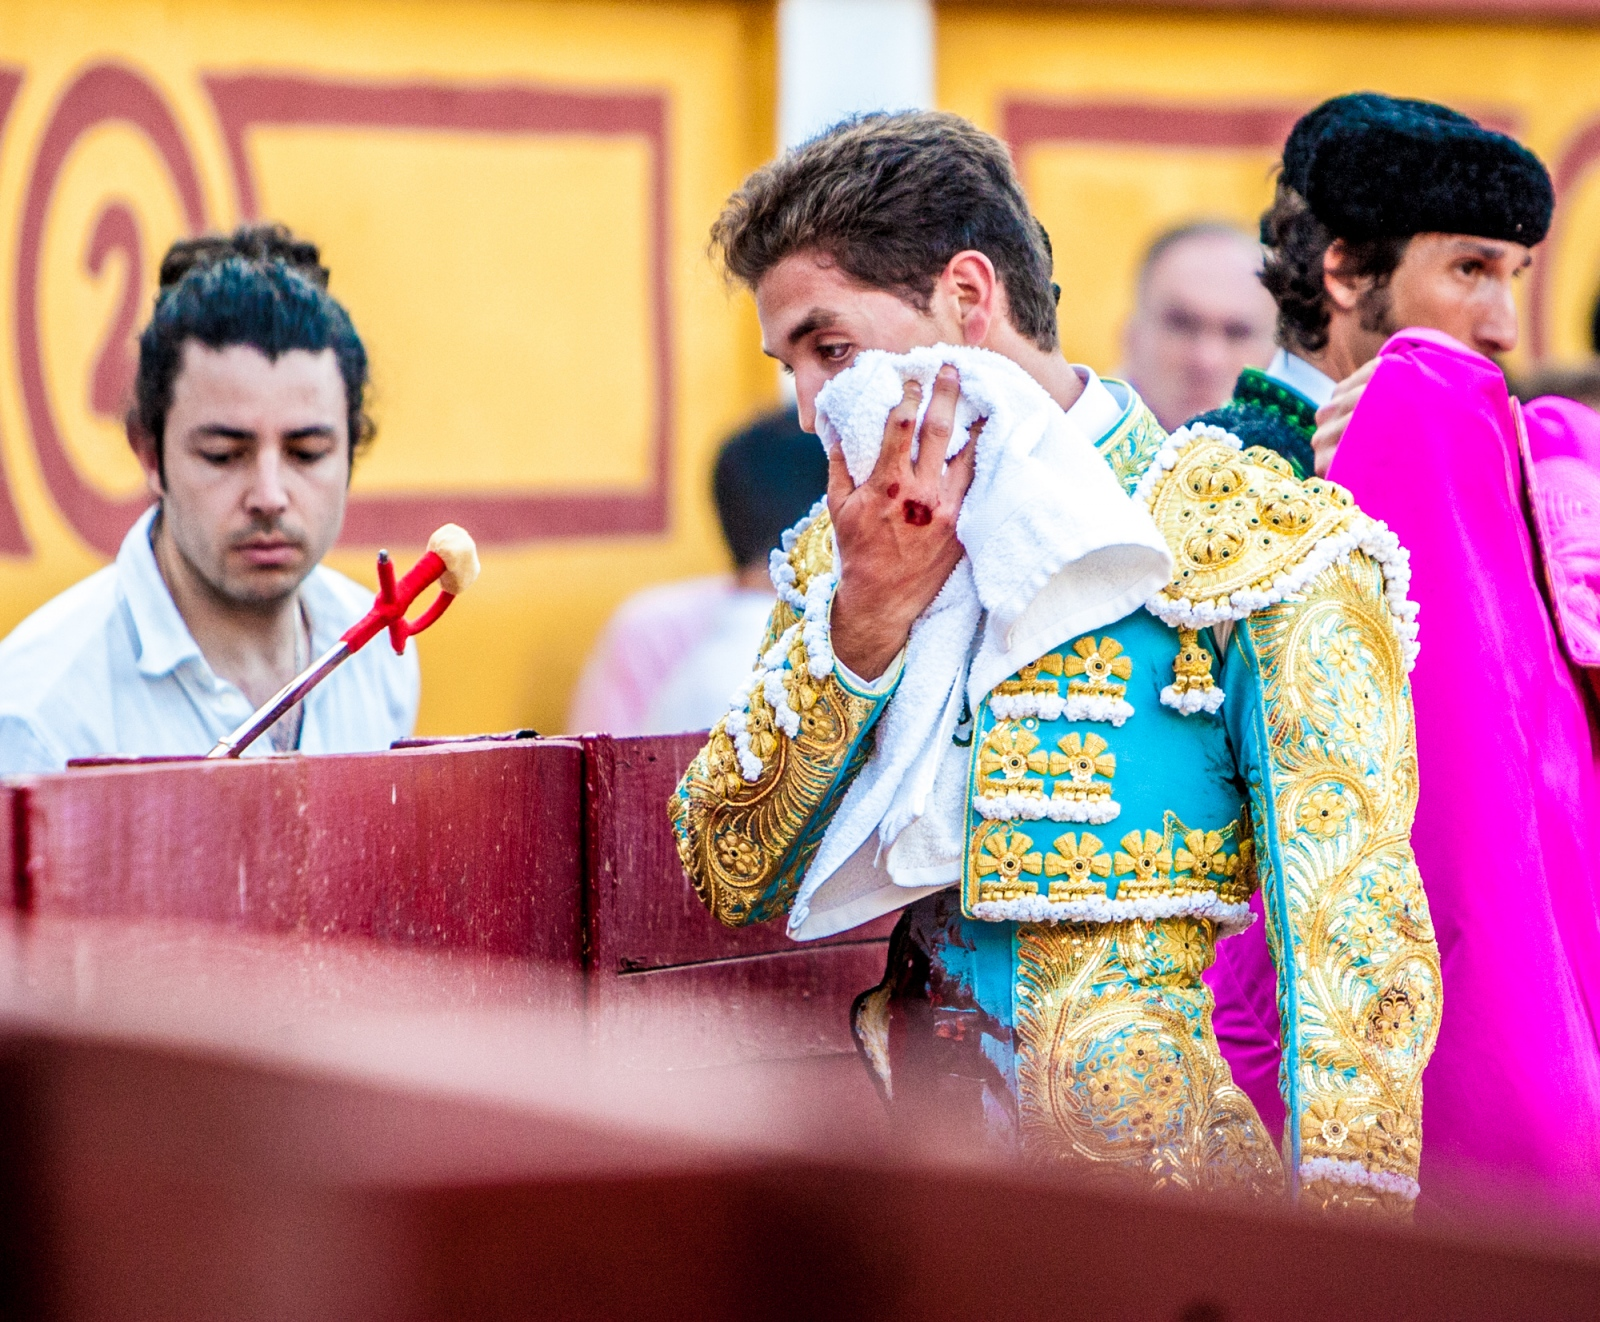 Art and Documentary Photography - Loading Oto_Bullfight_10.jpg